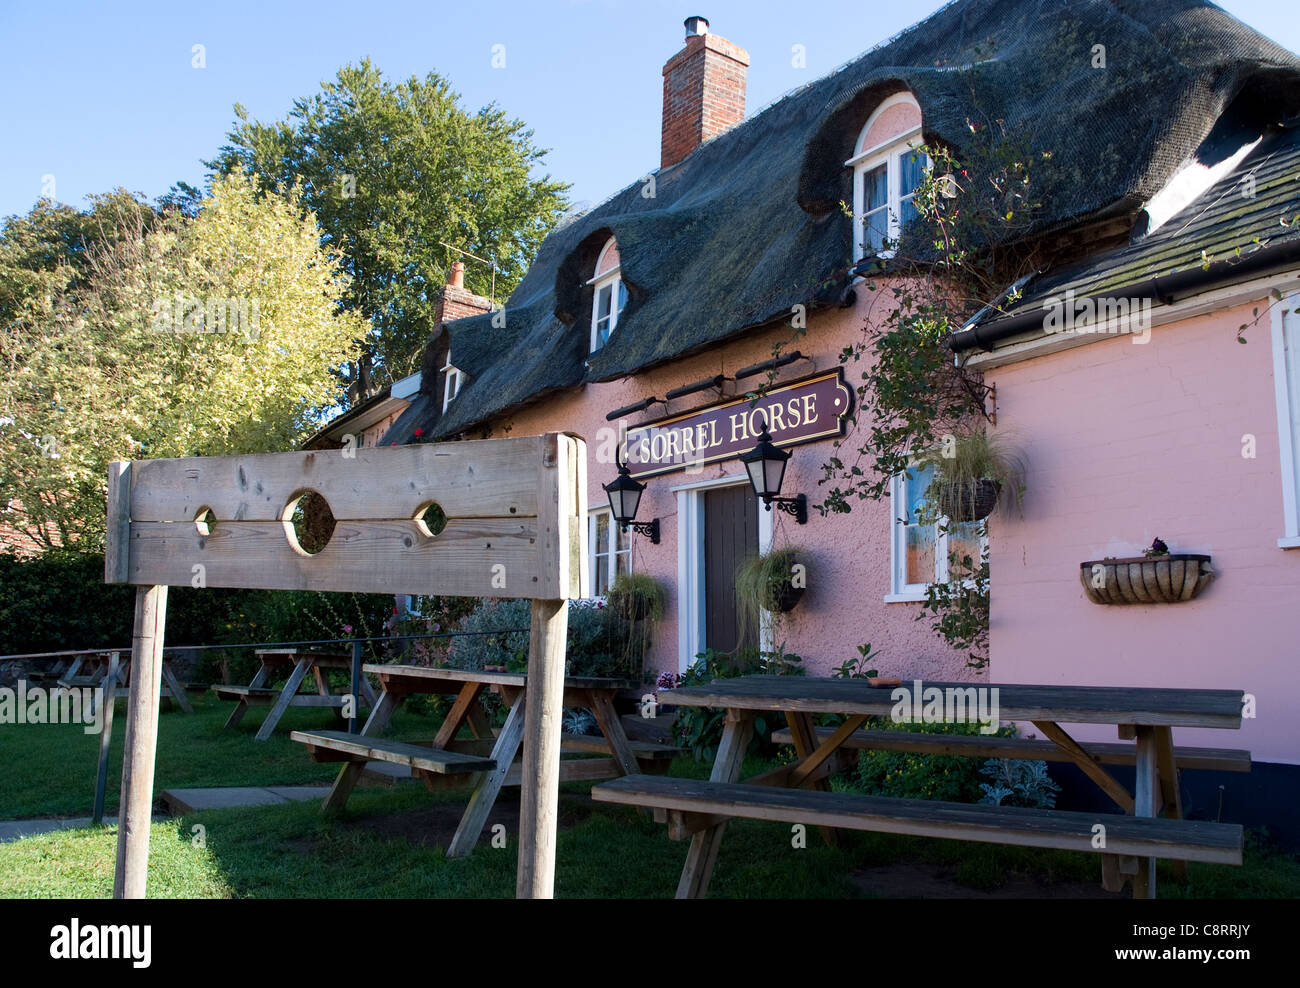 Medieval stocks outside The Sorrel Horse pub in Suffolk - Stock Image